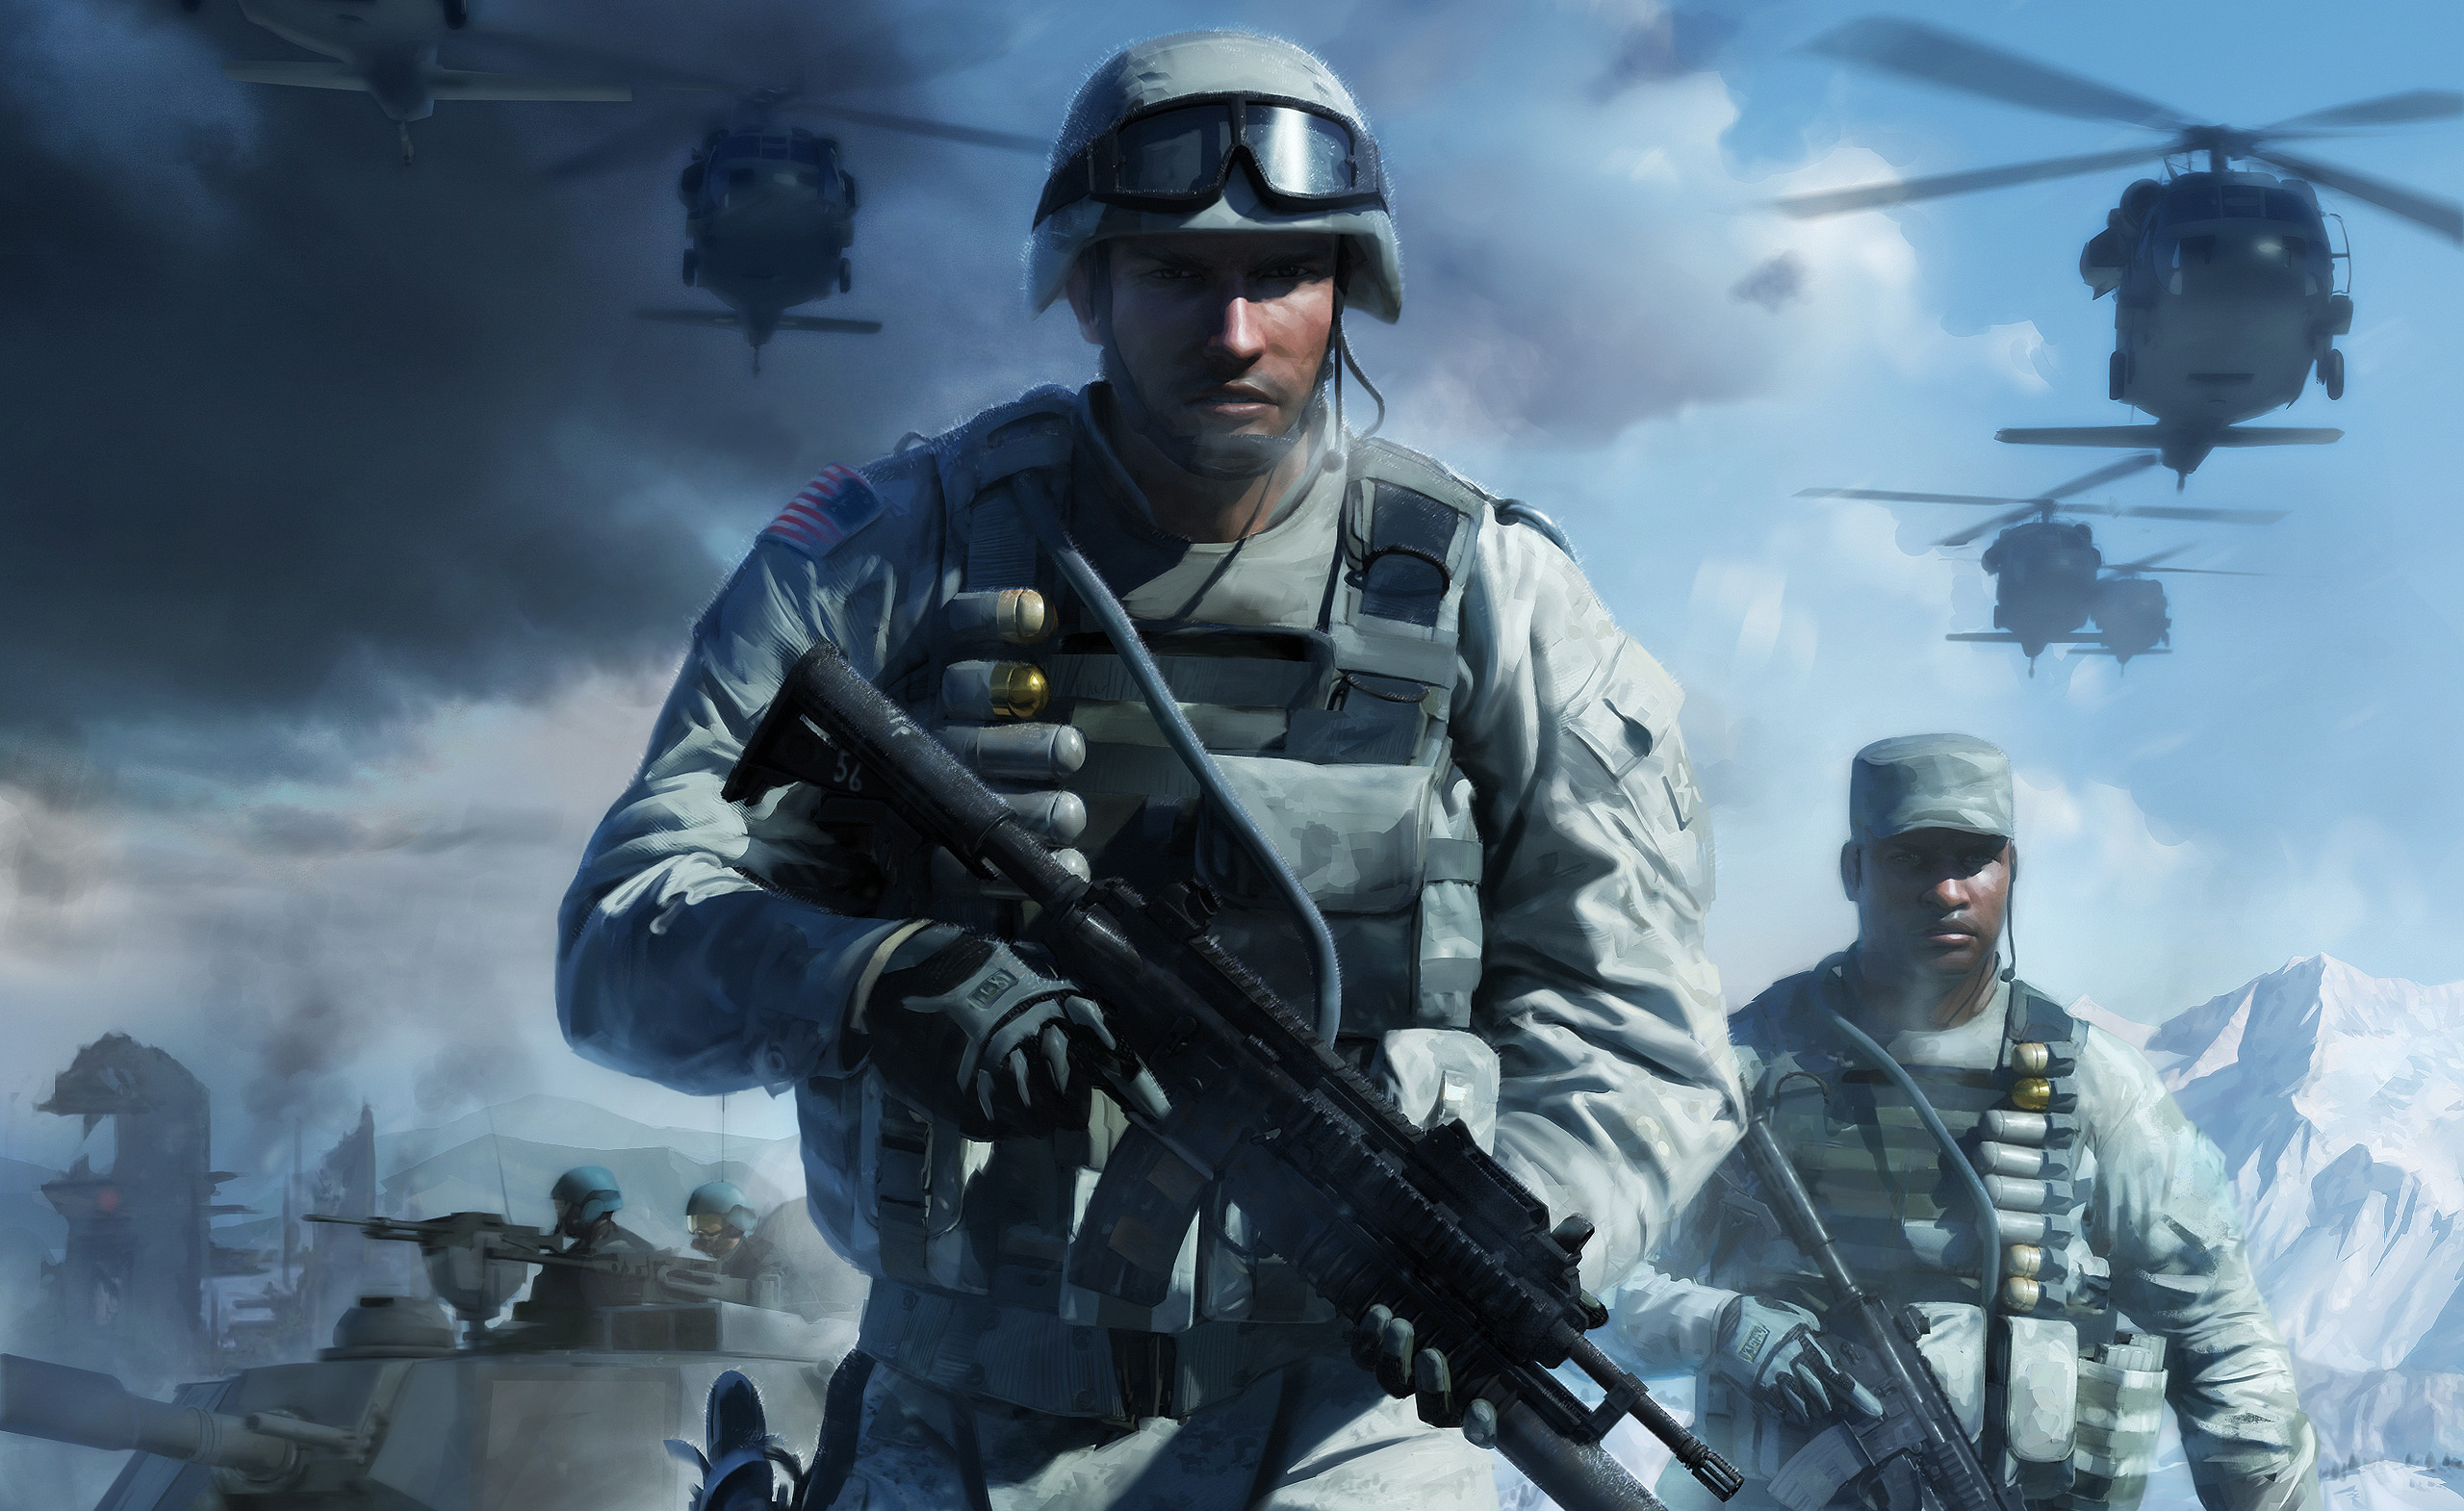 Concept Bad the of battlefield bad company 1 2 34 escape the level